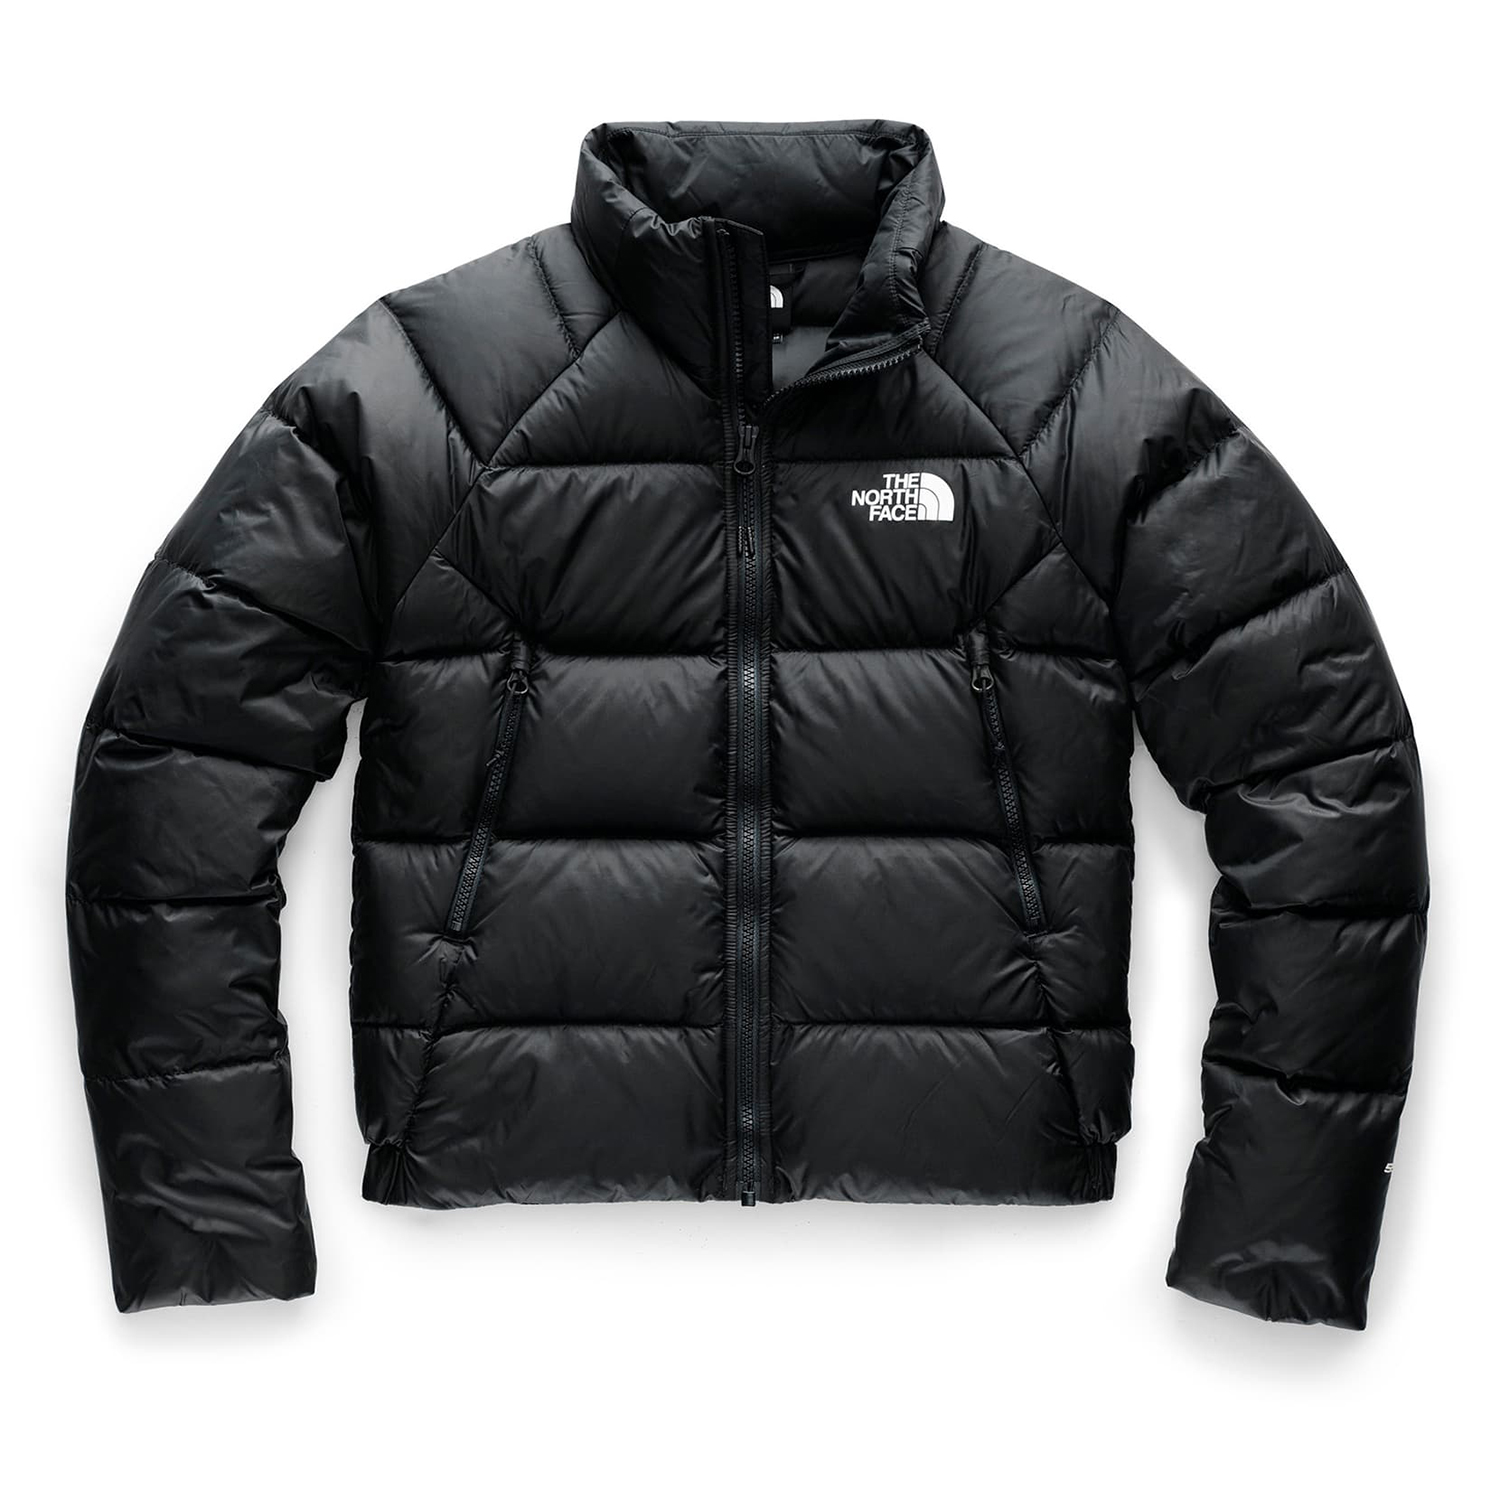 North Face Hyalite 550 Fill Power Down Jacket